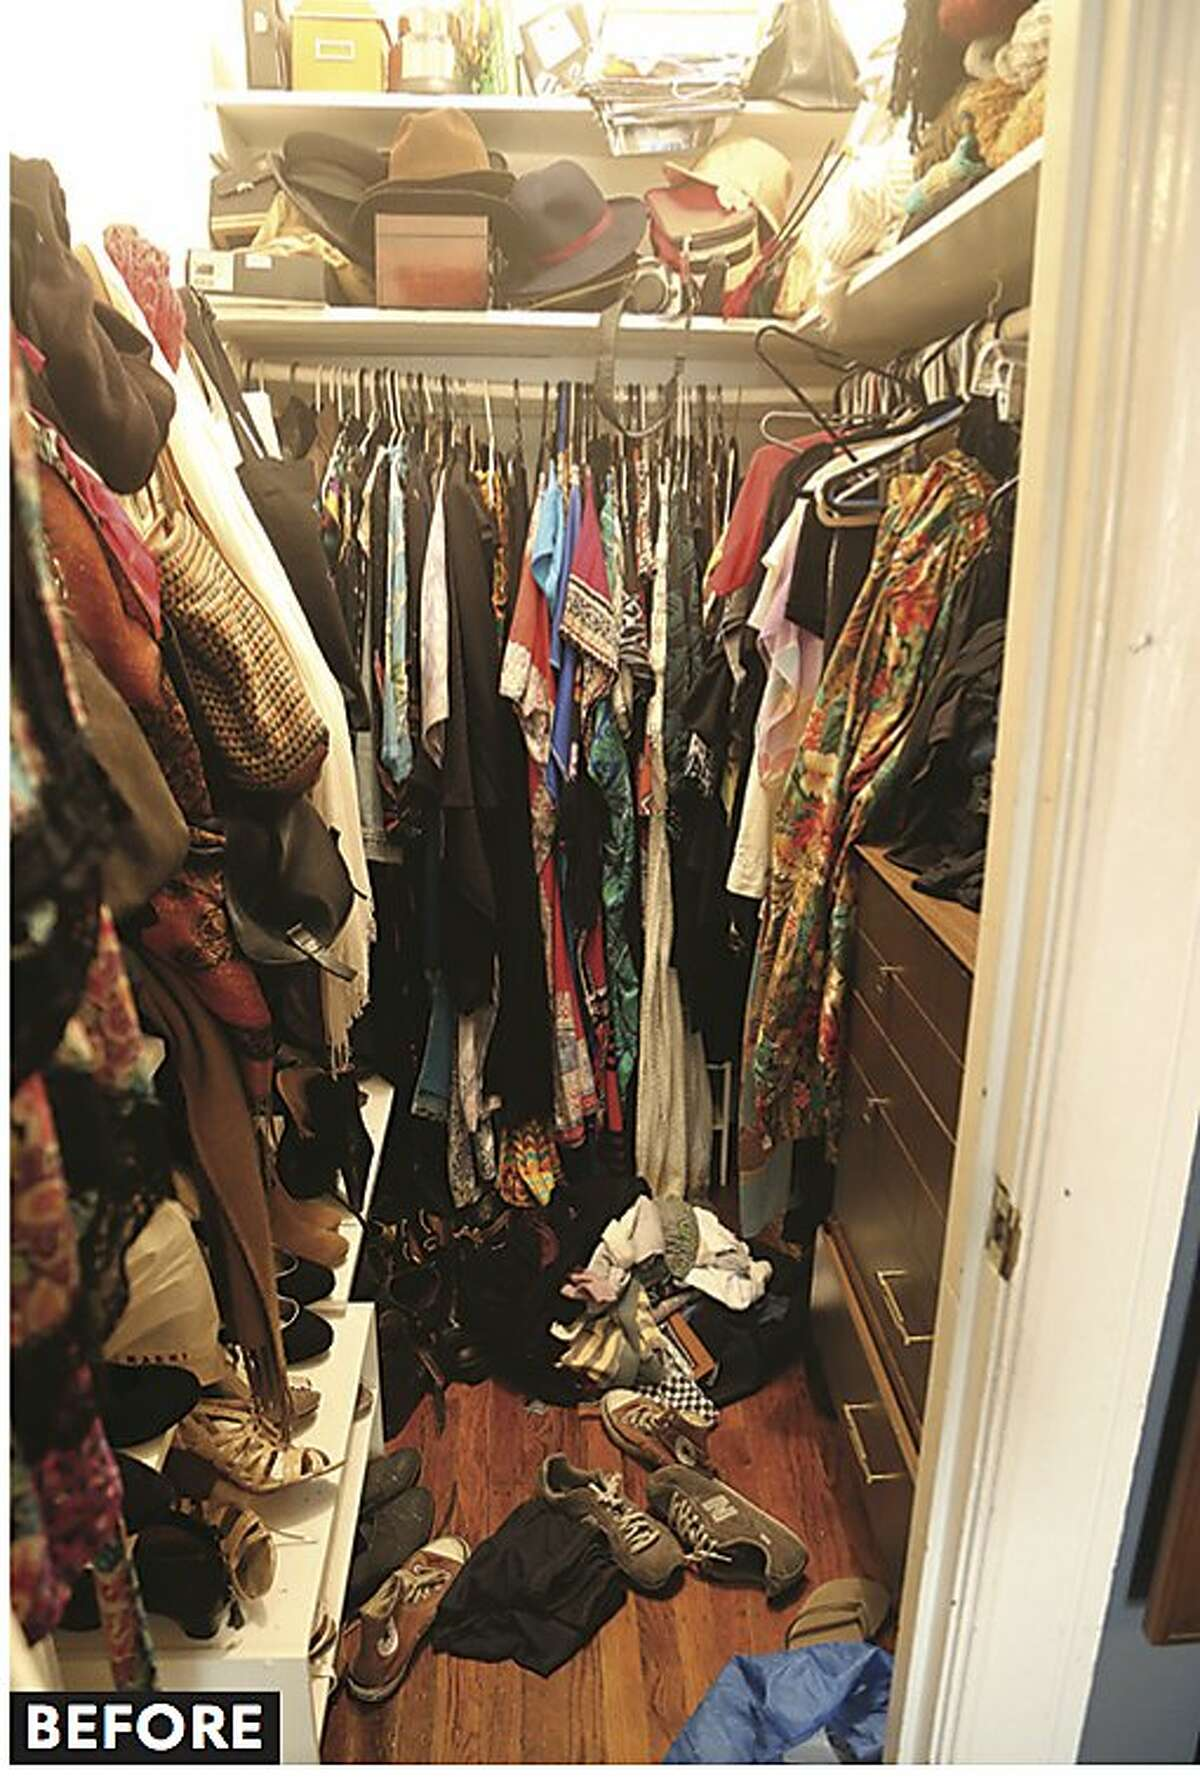 """Decluttering experts Cary Telander Fortin and Kyle Louise Quilici have put together a guide to streamlining your life --� """"New Minimalism,"""" 195 pages, Sasquatch Books, -- which hit bookstores on Jan. 2, 2018. The book contains a few before and after photos, as well as tips for helping people determine and deal with mental and emotional stumbling blocks to getting rid of possessions and clutter."""